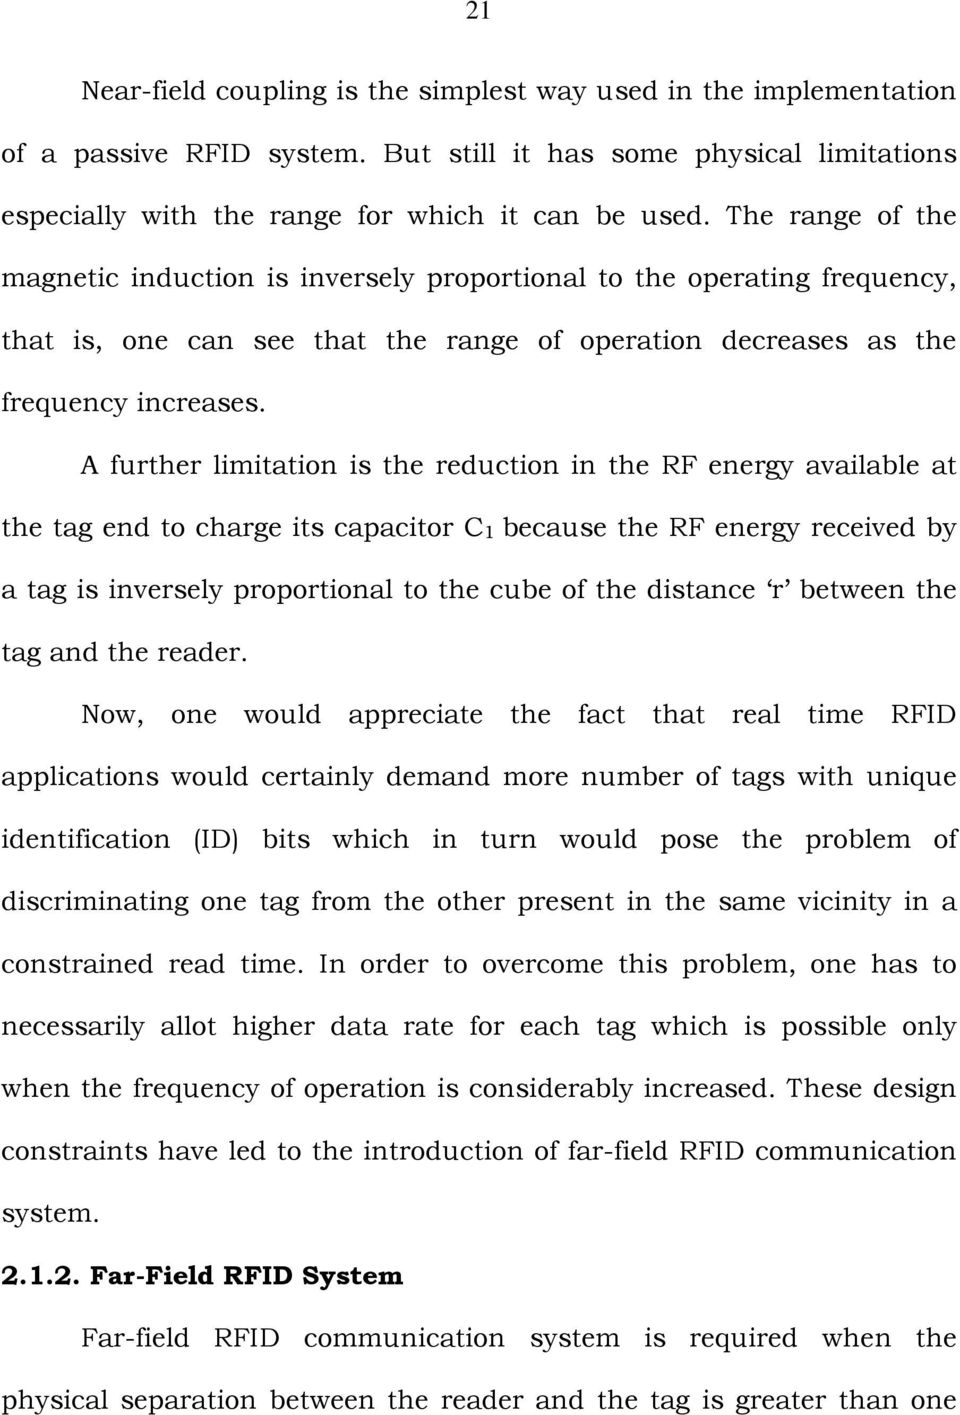 A further limitation is the reduction in the RF energy available at the tag end to charge its capacitor C1 because the RF energy received by a tag is inversely proportional to the cube of the